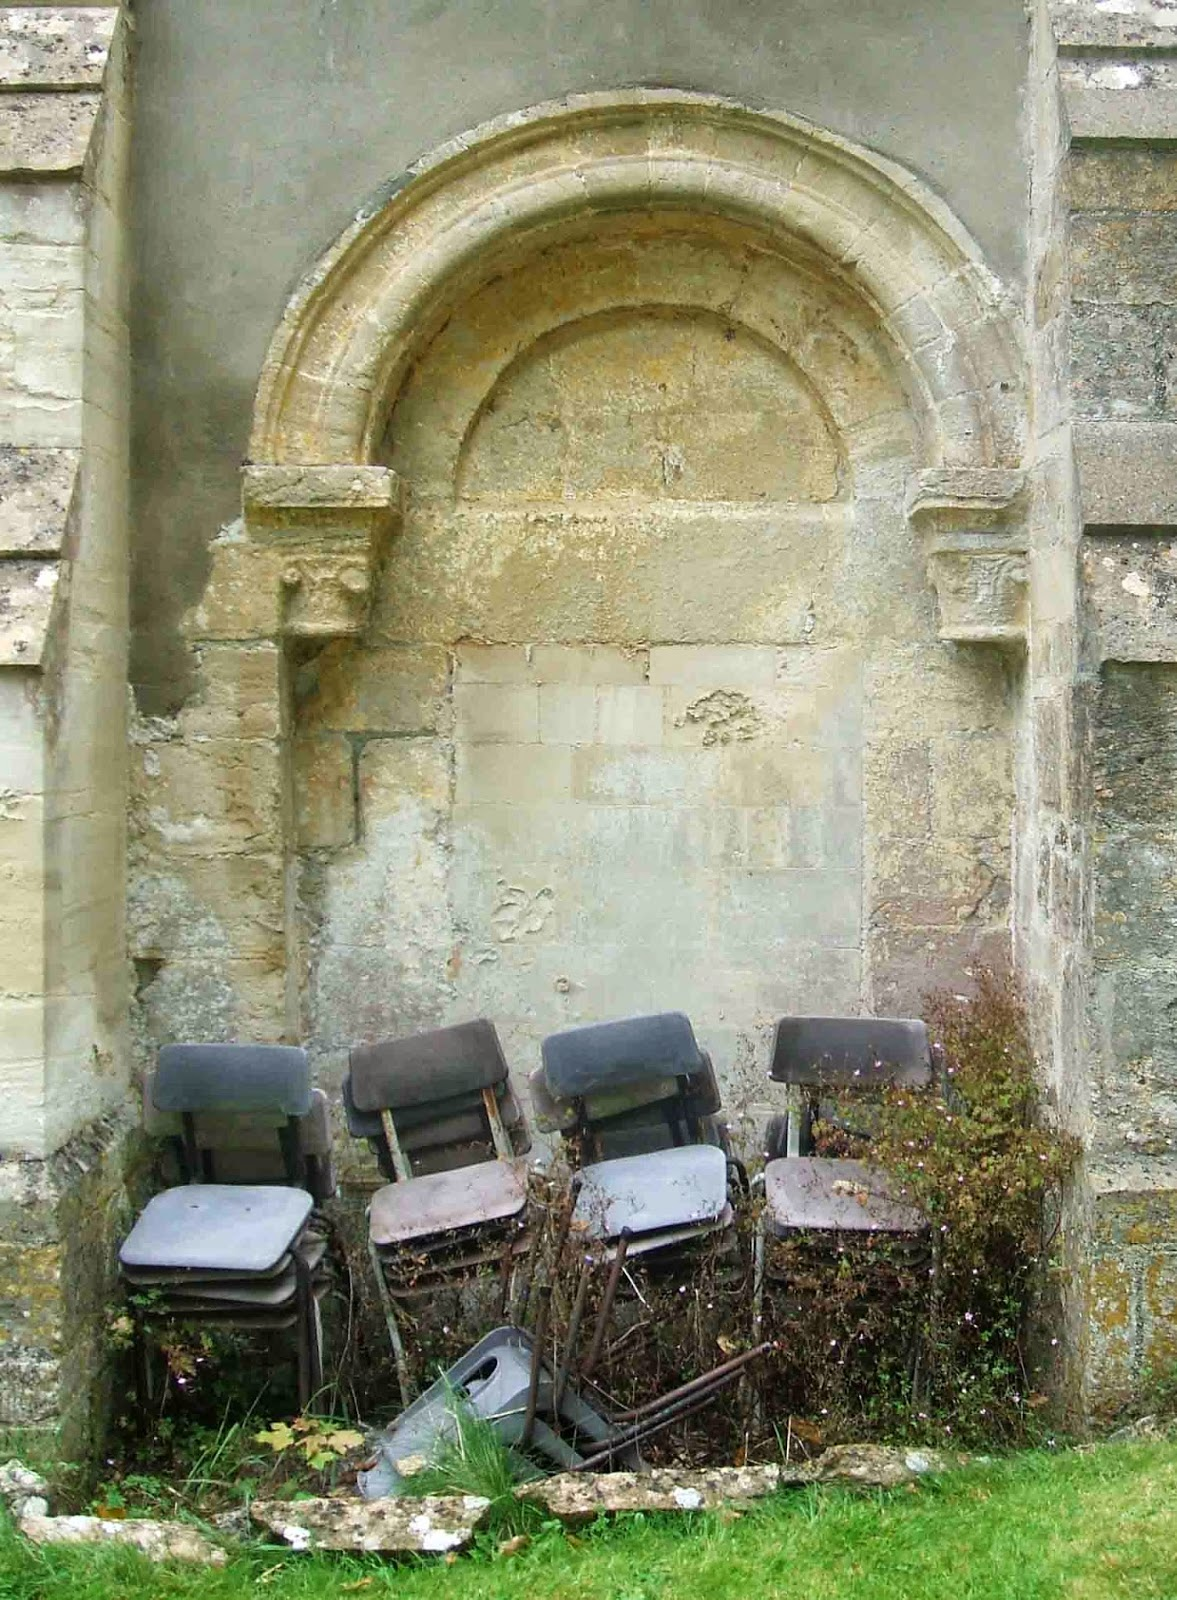 Chairs piled up outside the poor neglected Norman arch at Coulston, Wiltshire